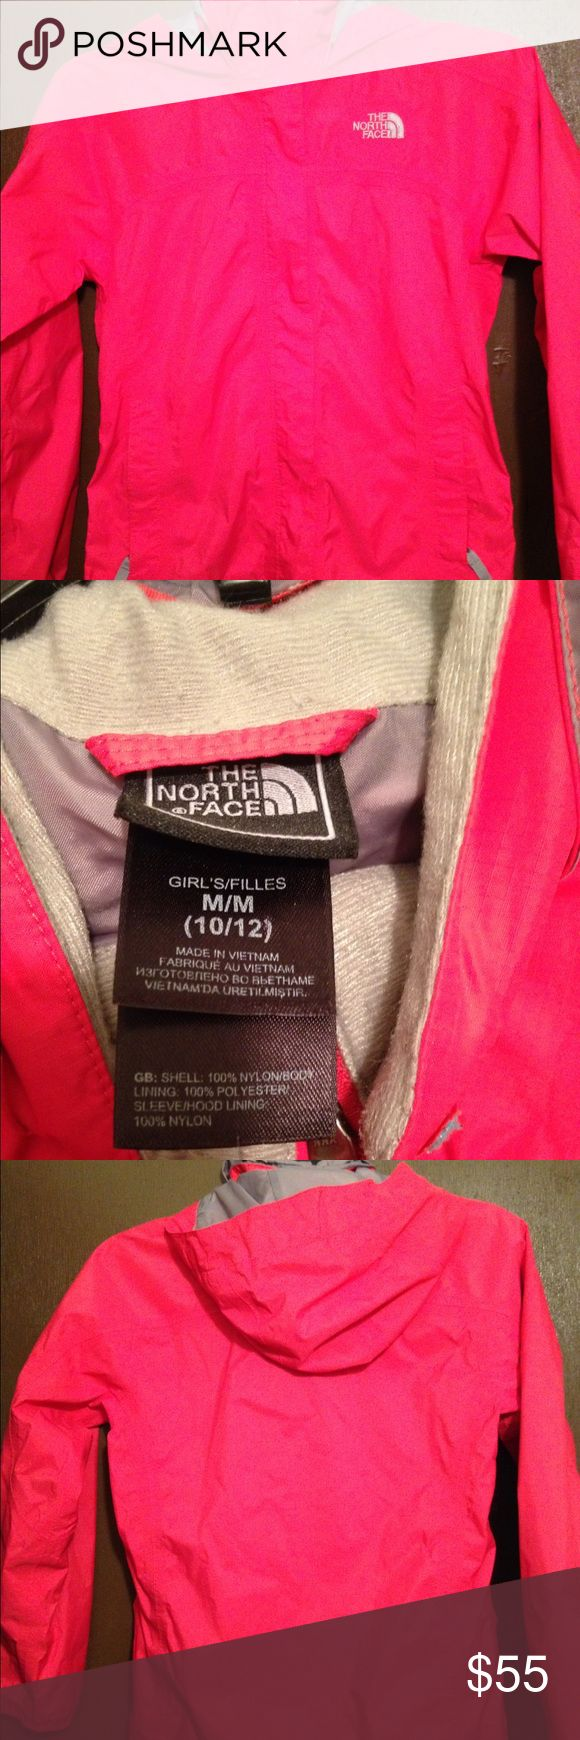 Authentic fuchsia pink North Face girl windbreaker Fuchsia pink girl windbreaker size 10/12. Wore a few times but in excellent condition. The North Face Jackets & Coats